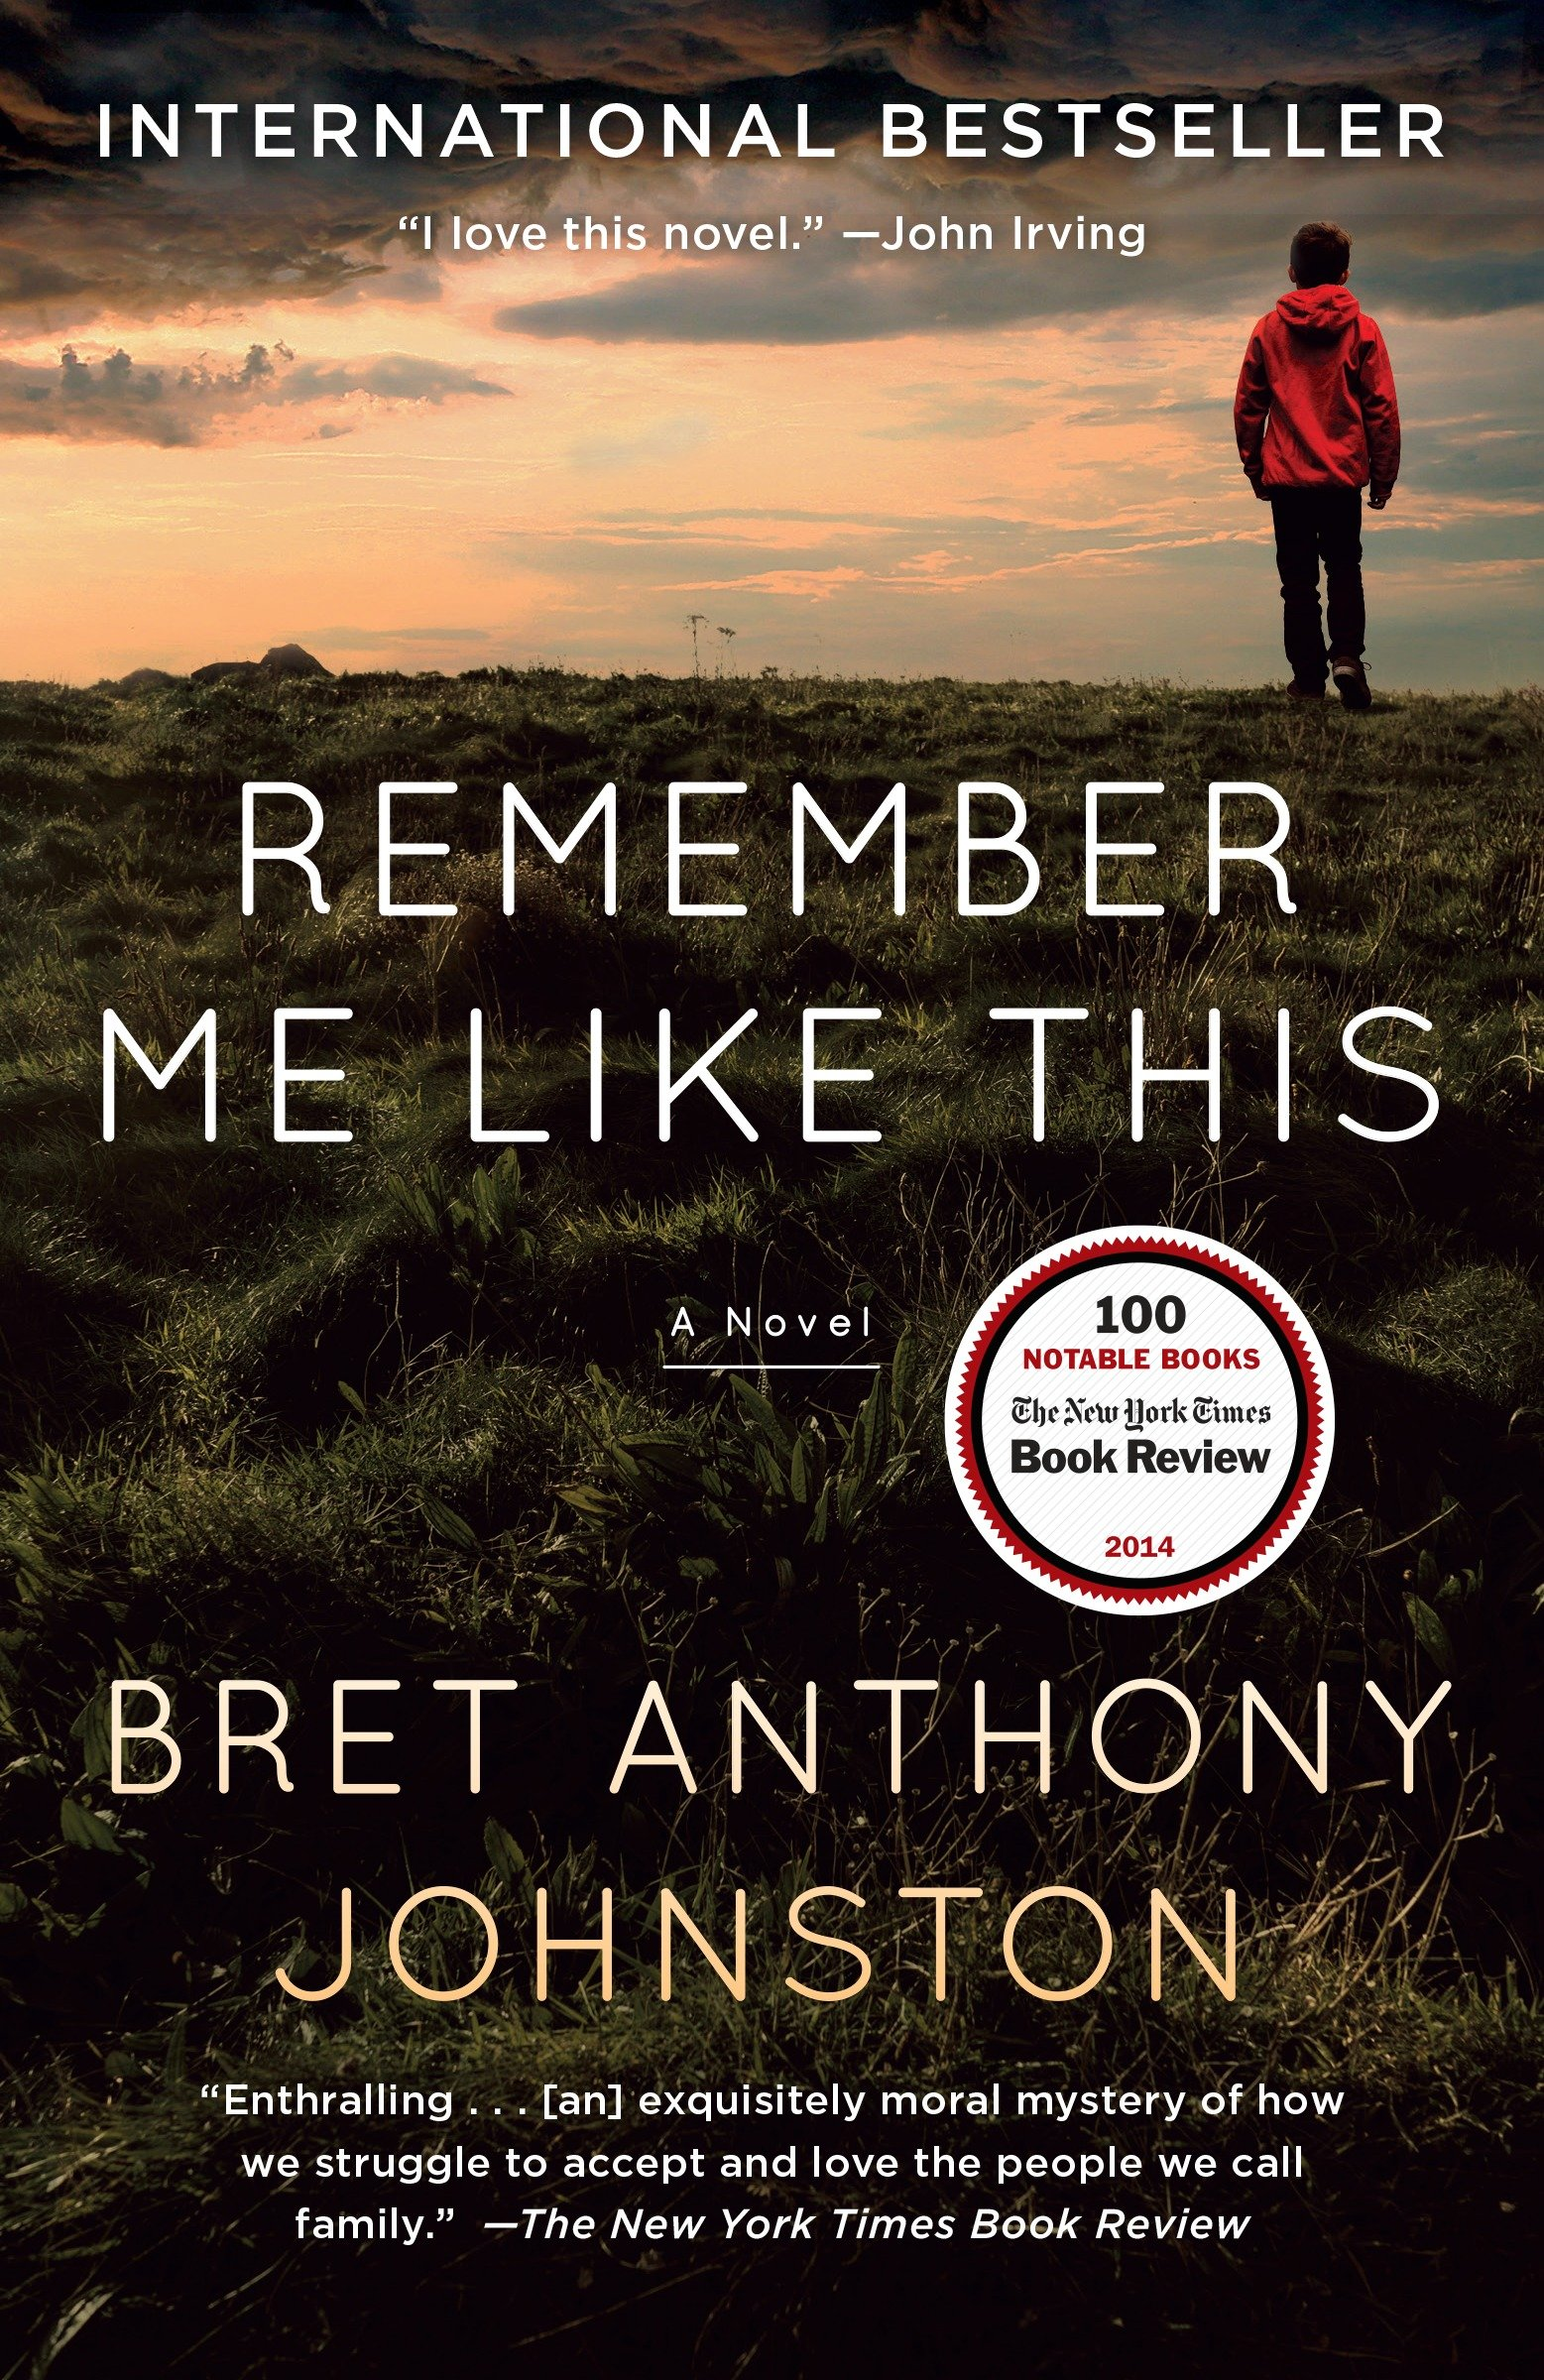 Remember me like this cover image